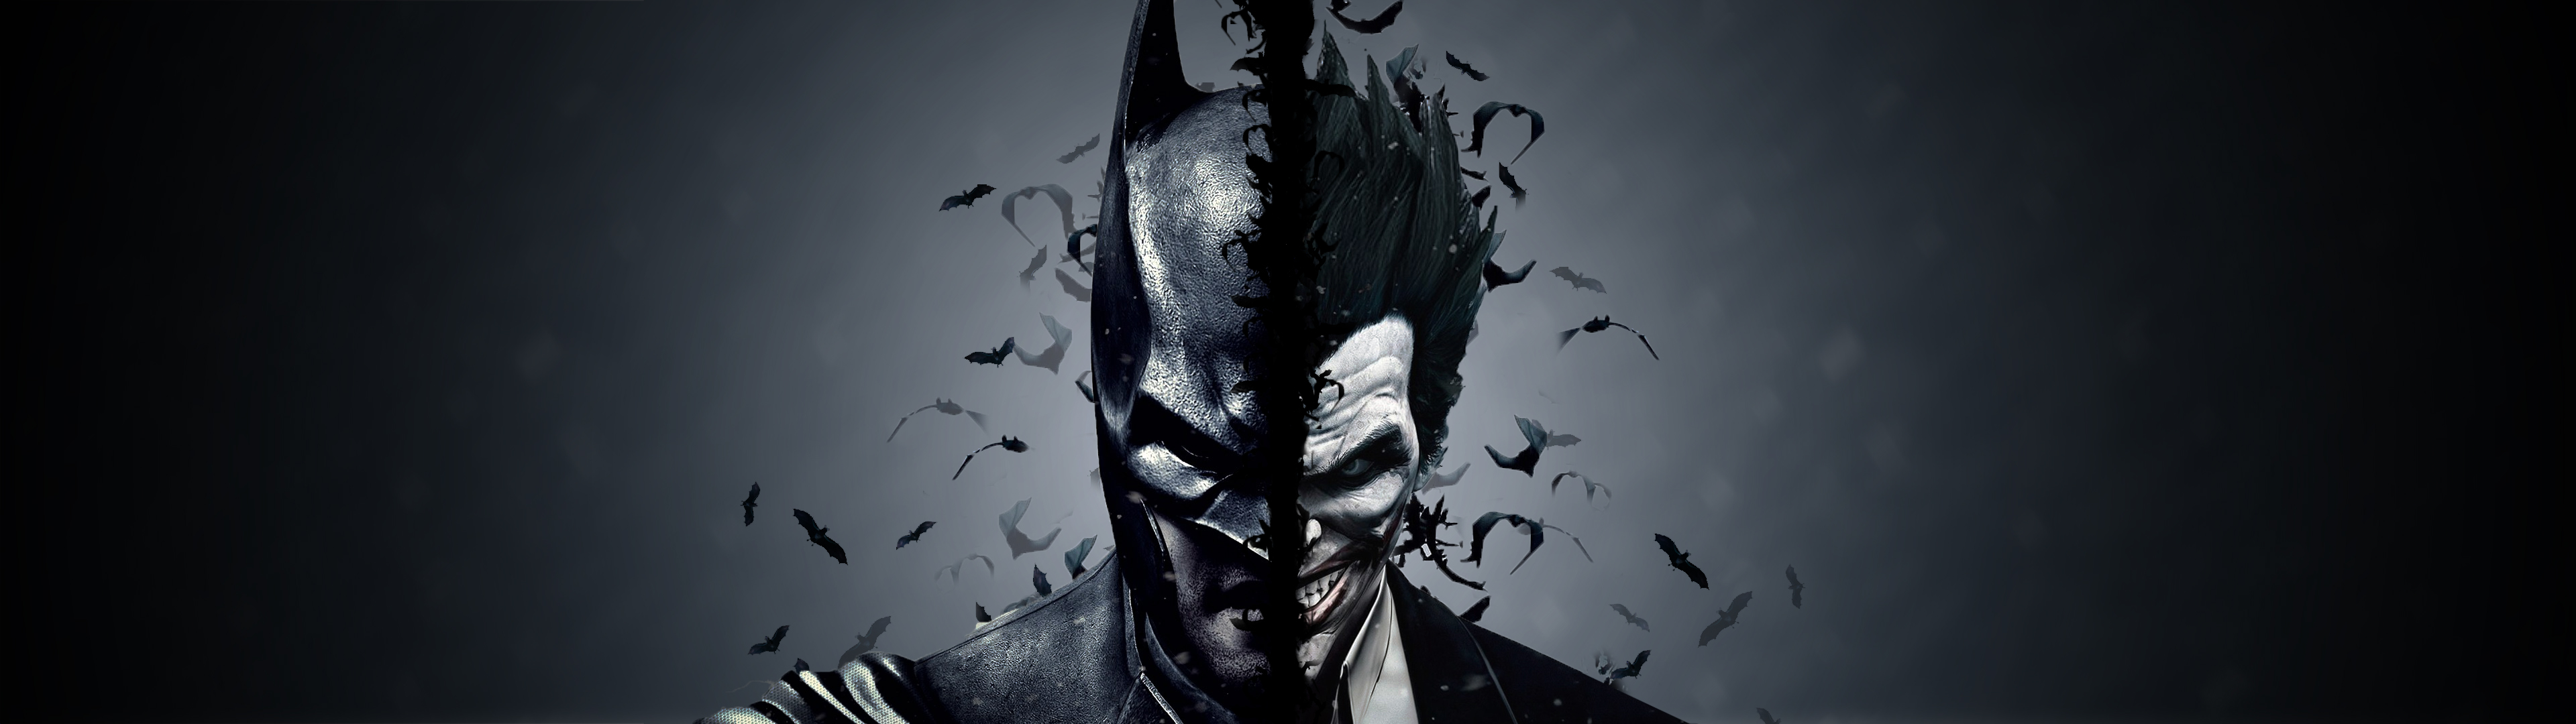 Download 85 Joker Wallpaper The Dark Knight The 3840x1080